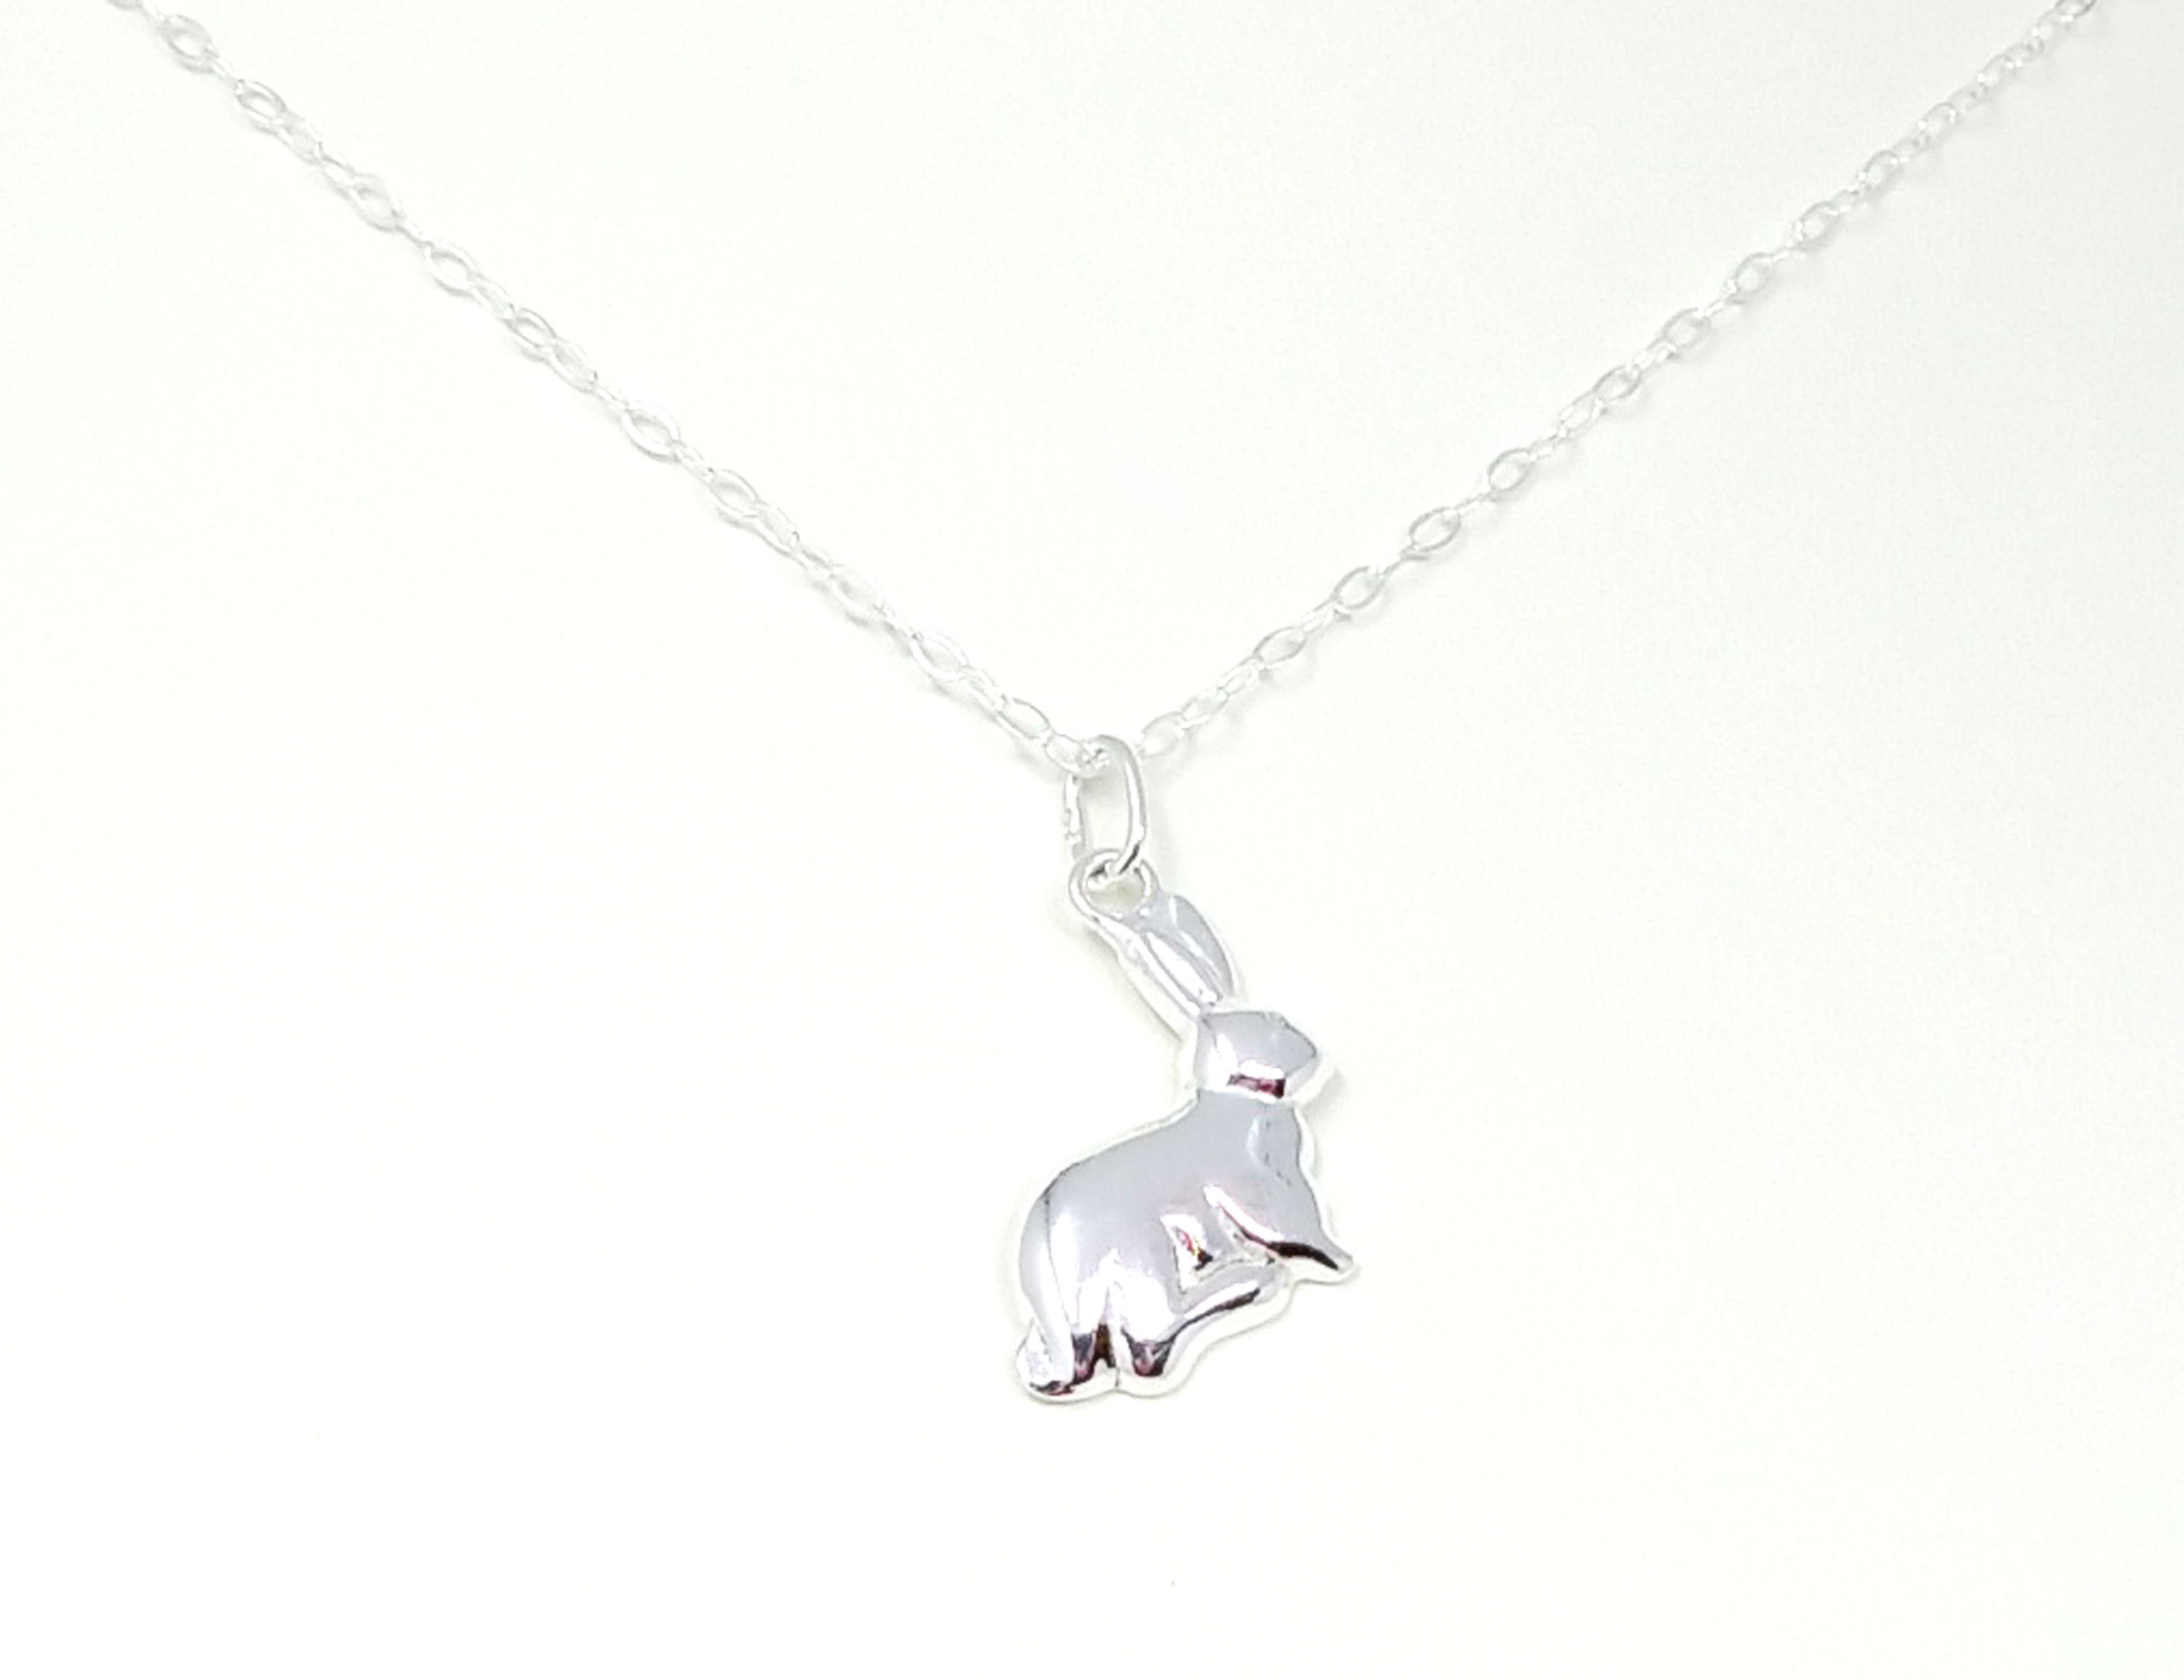 EASTER BUNNY RABBIT NECKLACE GIFT IN BOX,